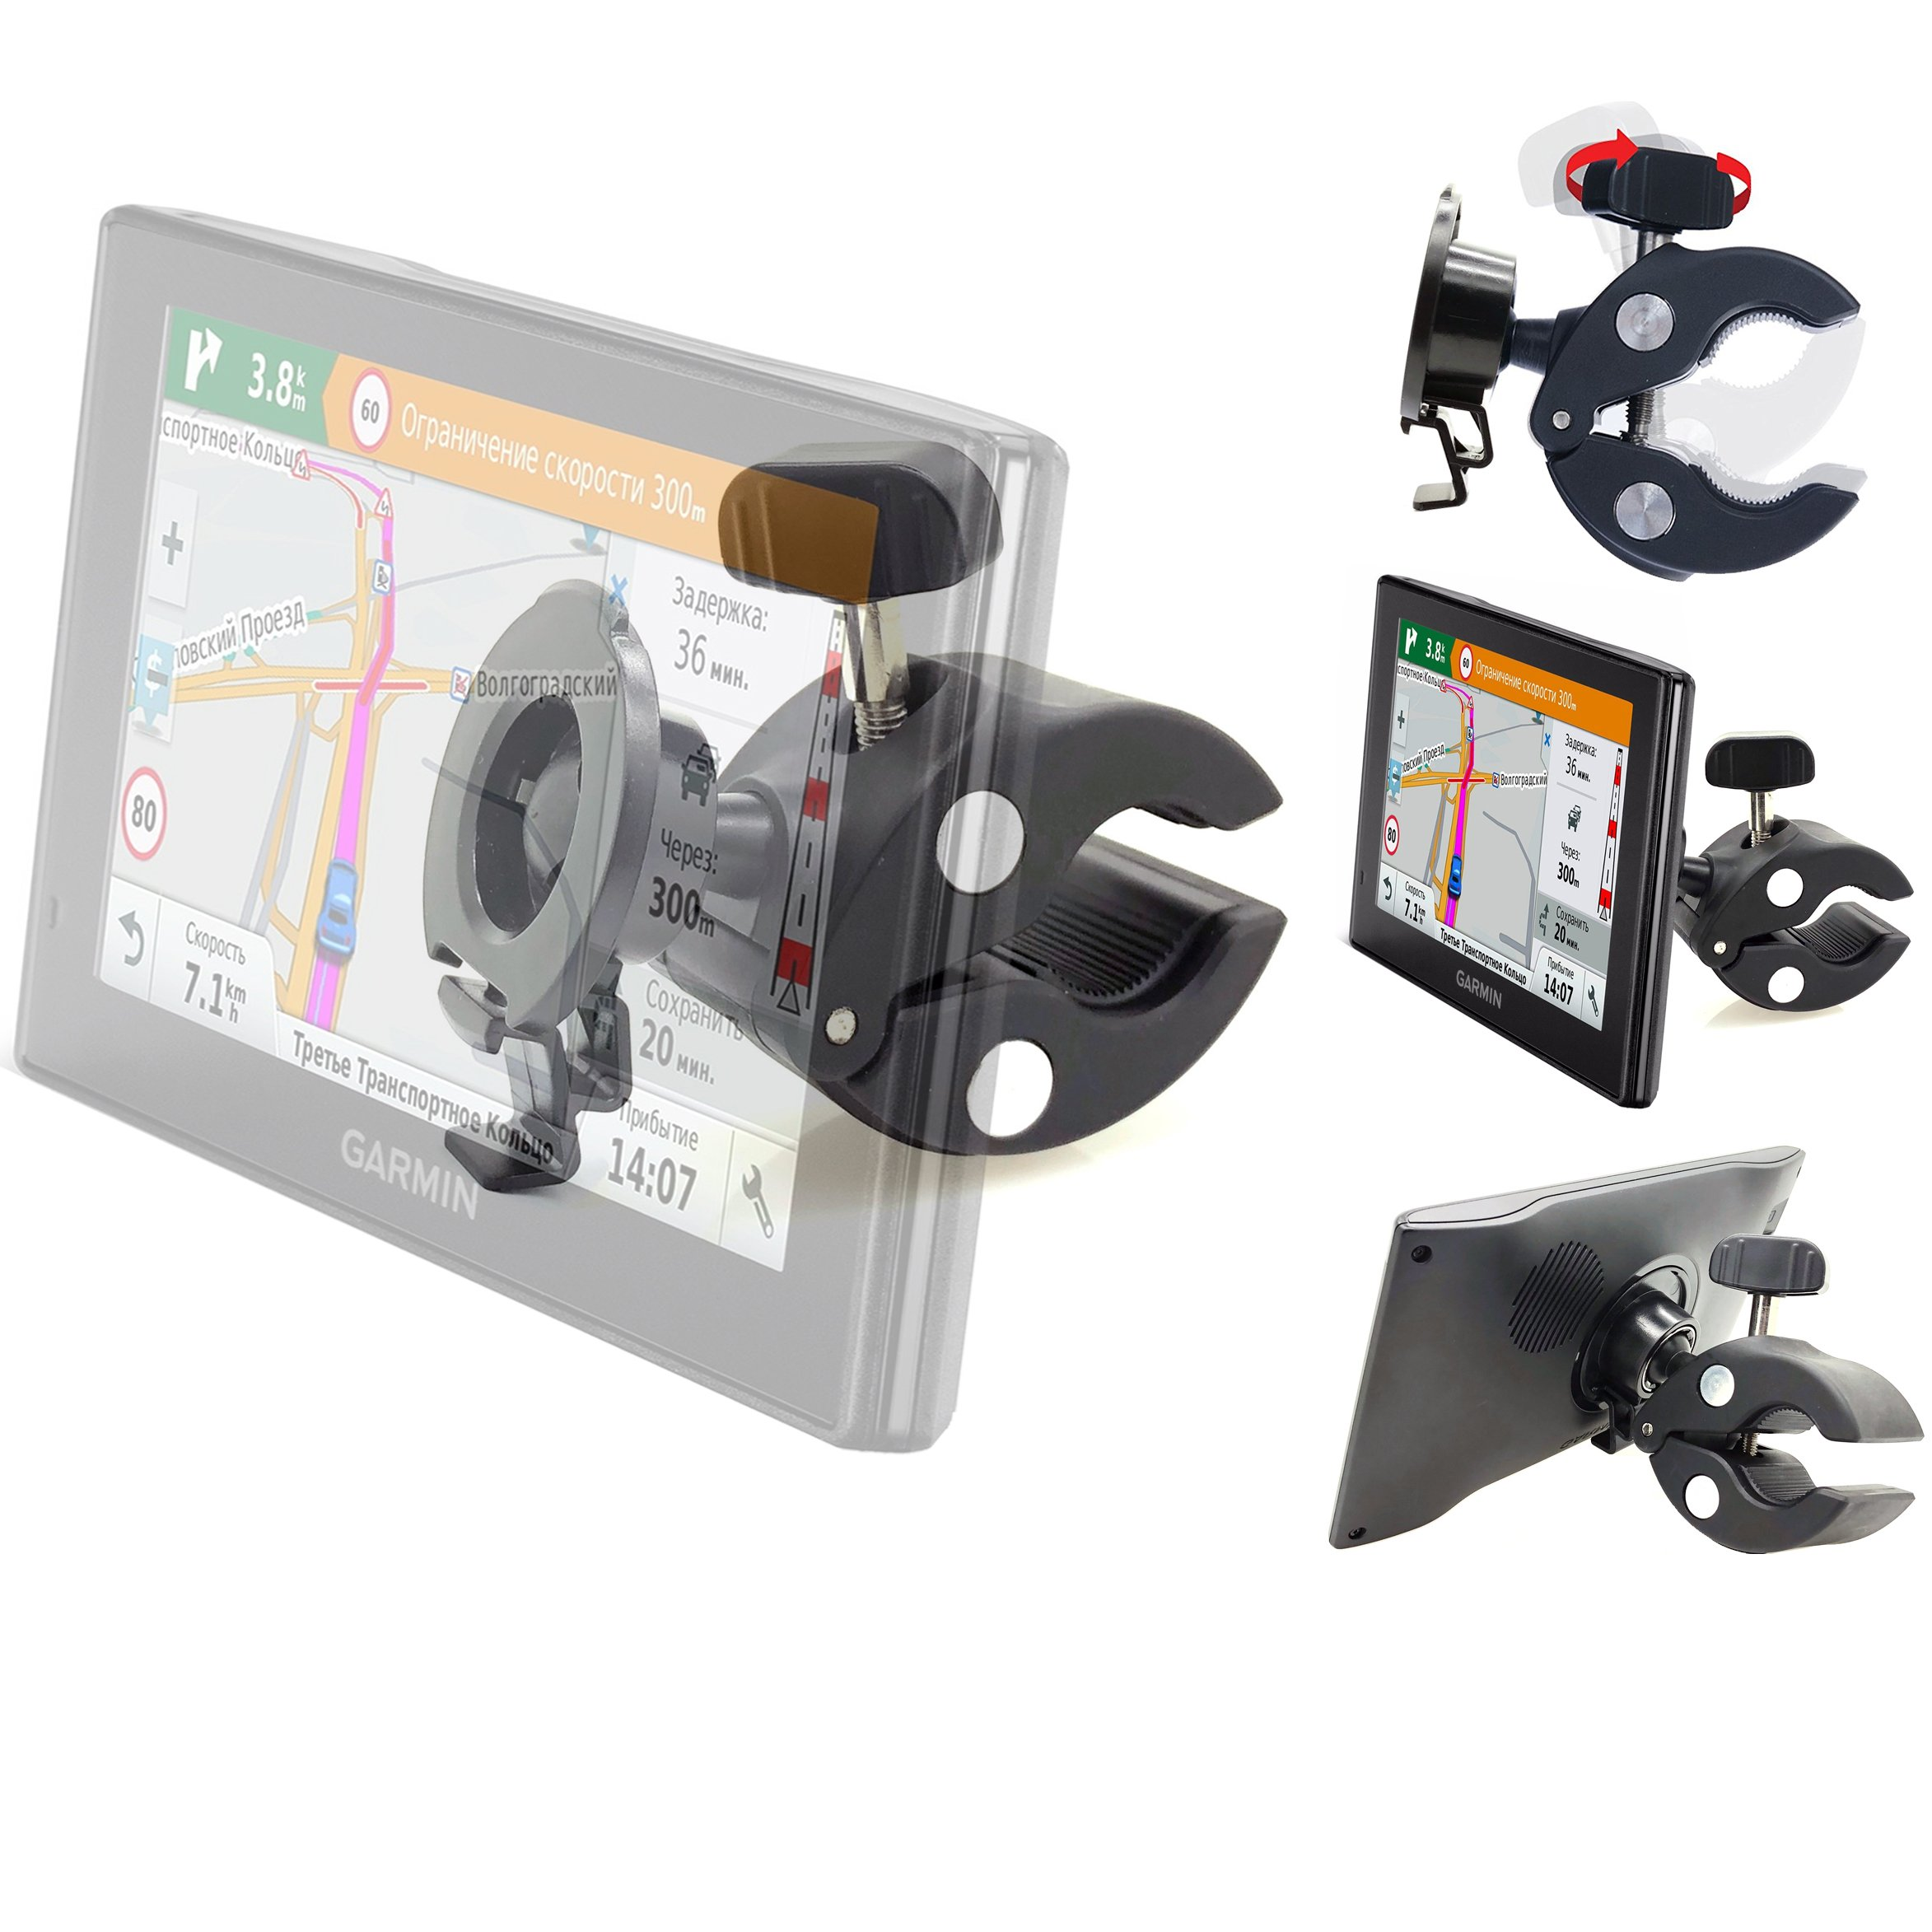 Heavy Duty Bike Motorcycle Clamp Mount Holder for Garmin Nuvi 52LM 54 55LMT 56LMT 57LMT 58LMT 66 67 68 2557 2559LMT 2597…